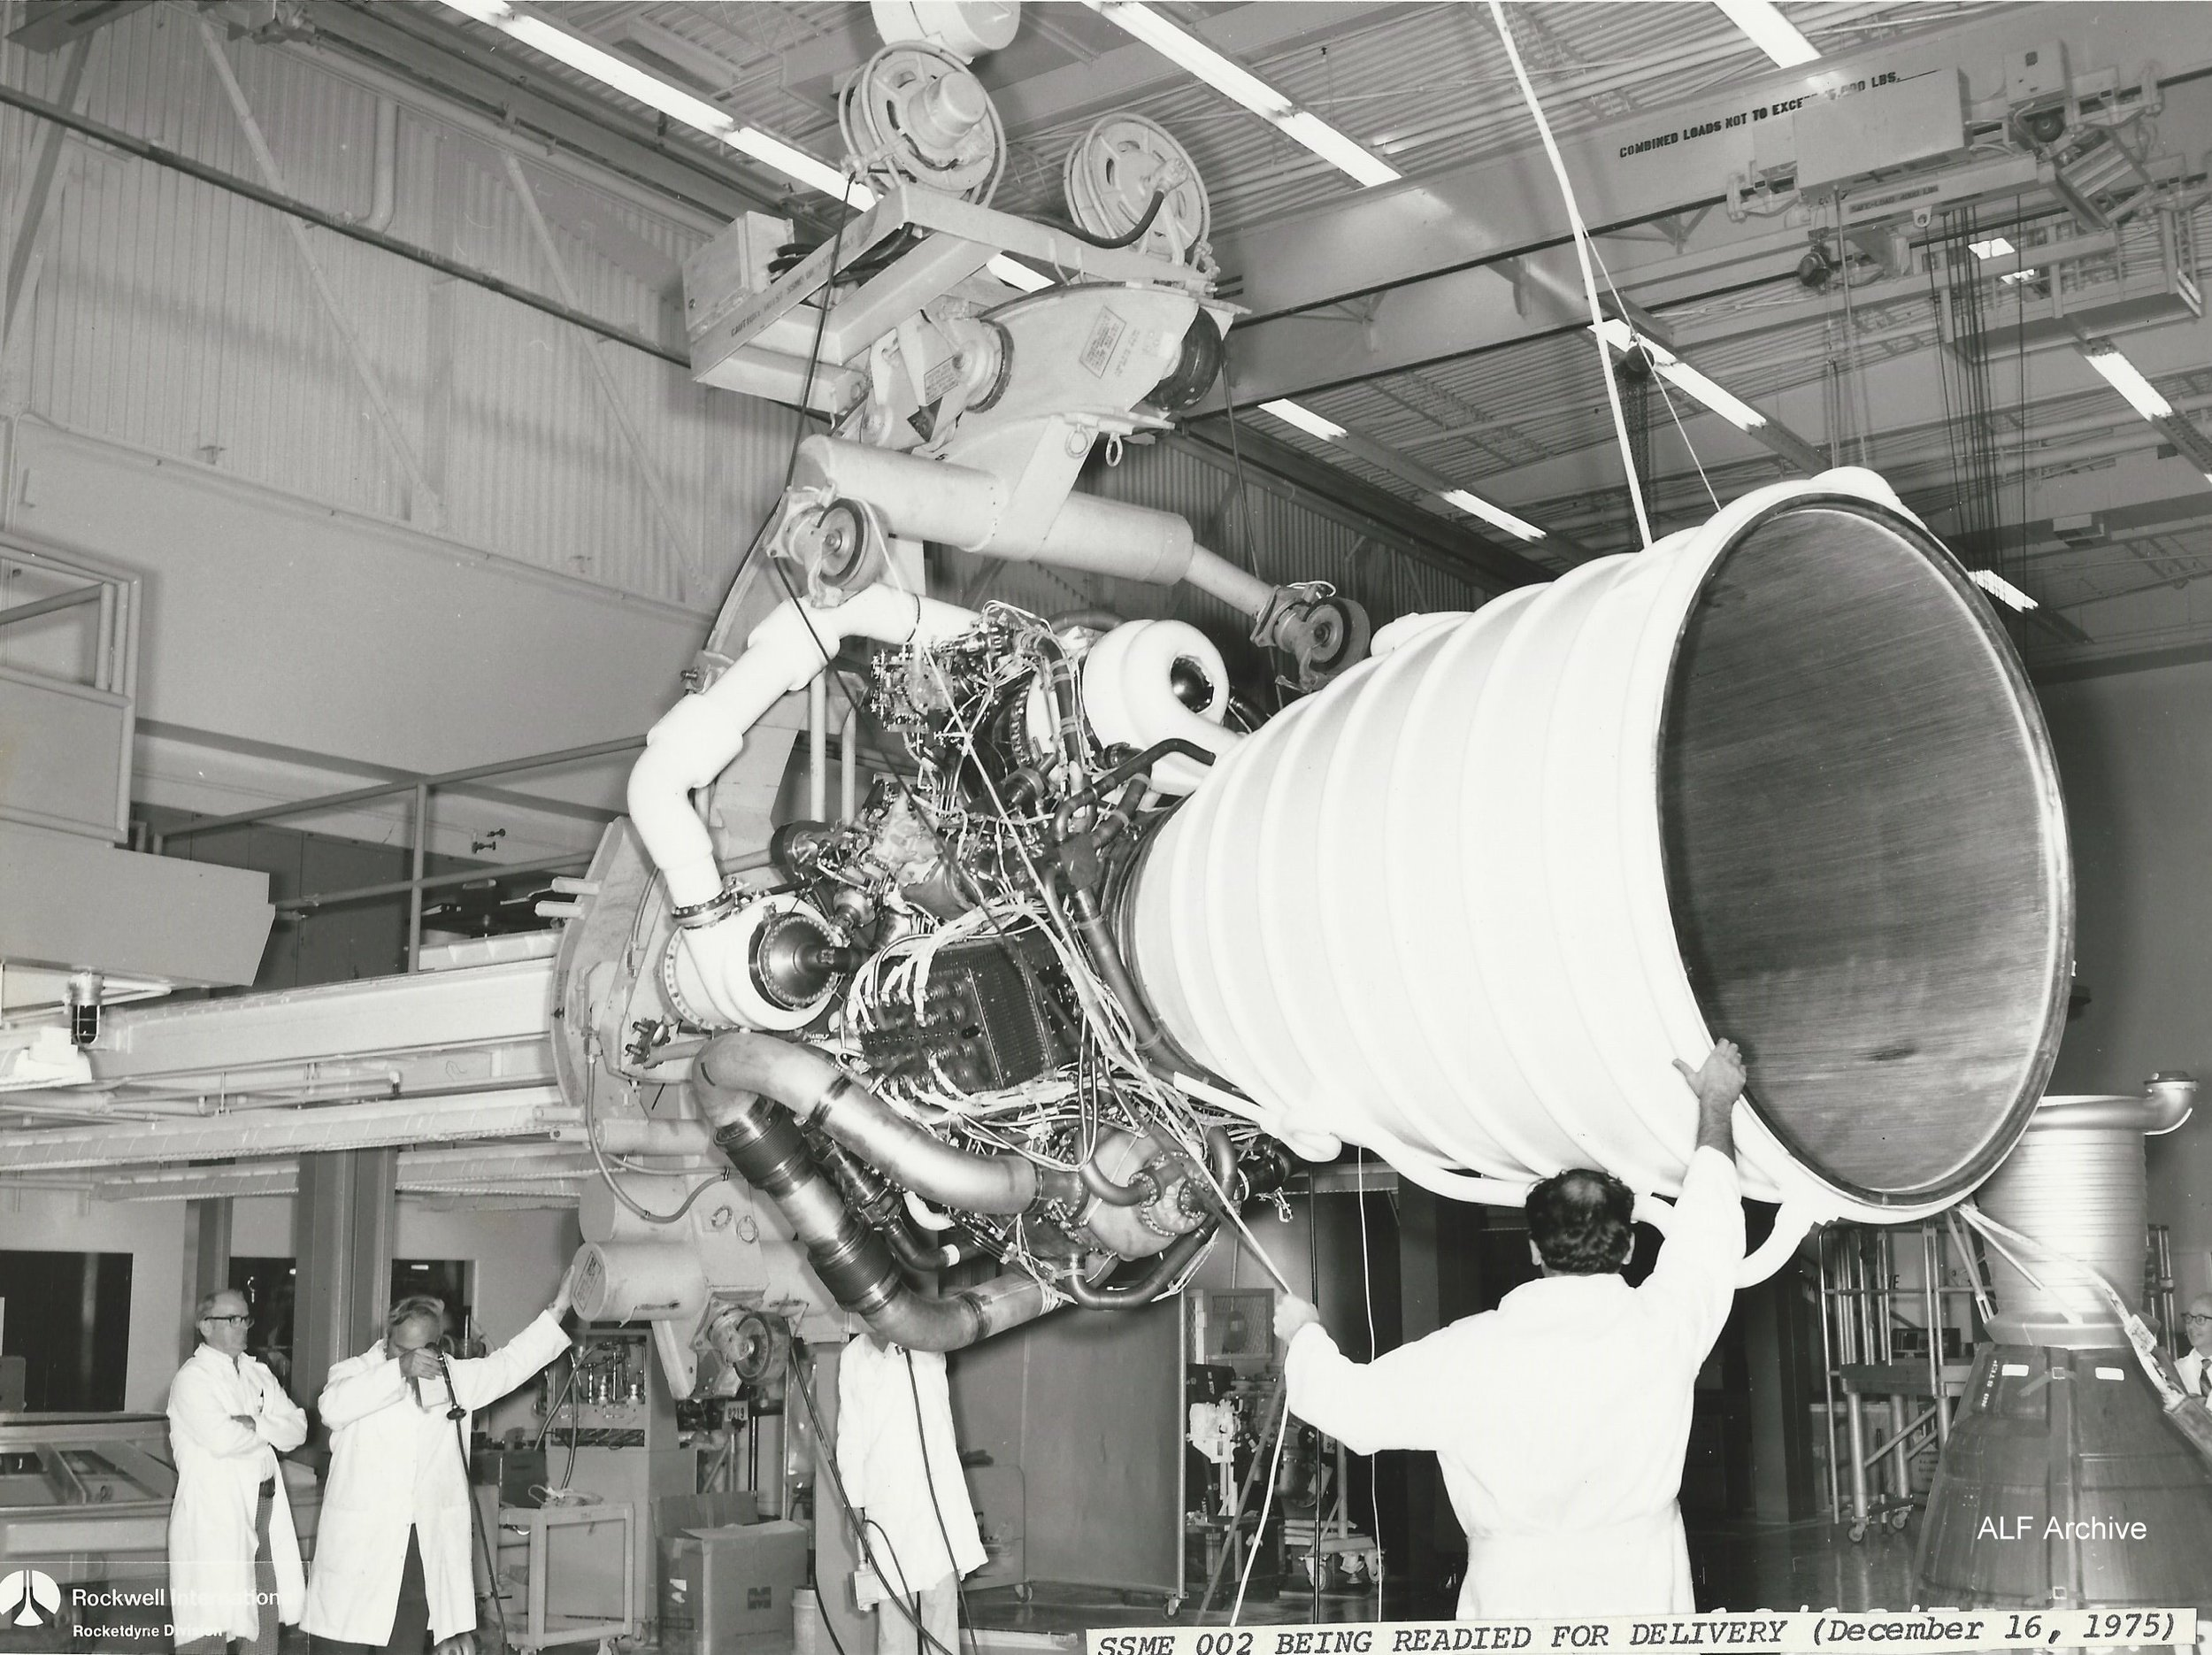 SSME 002 readied for delivery dec 16 1975.jpg